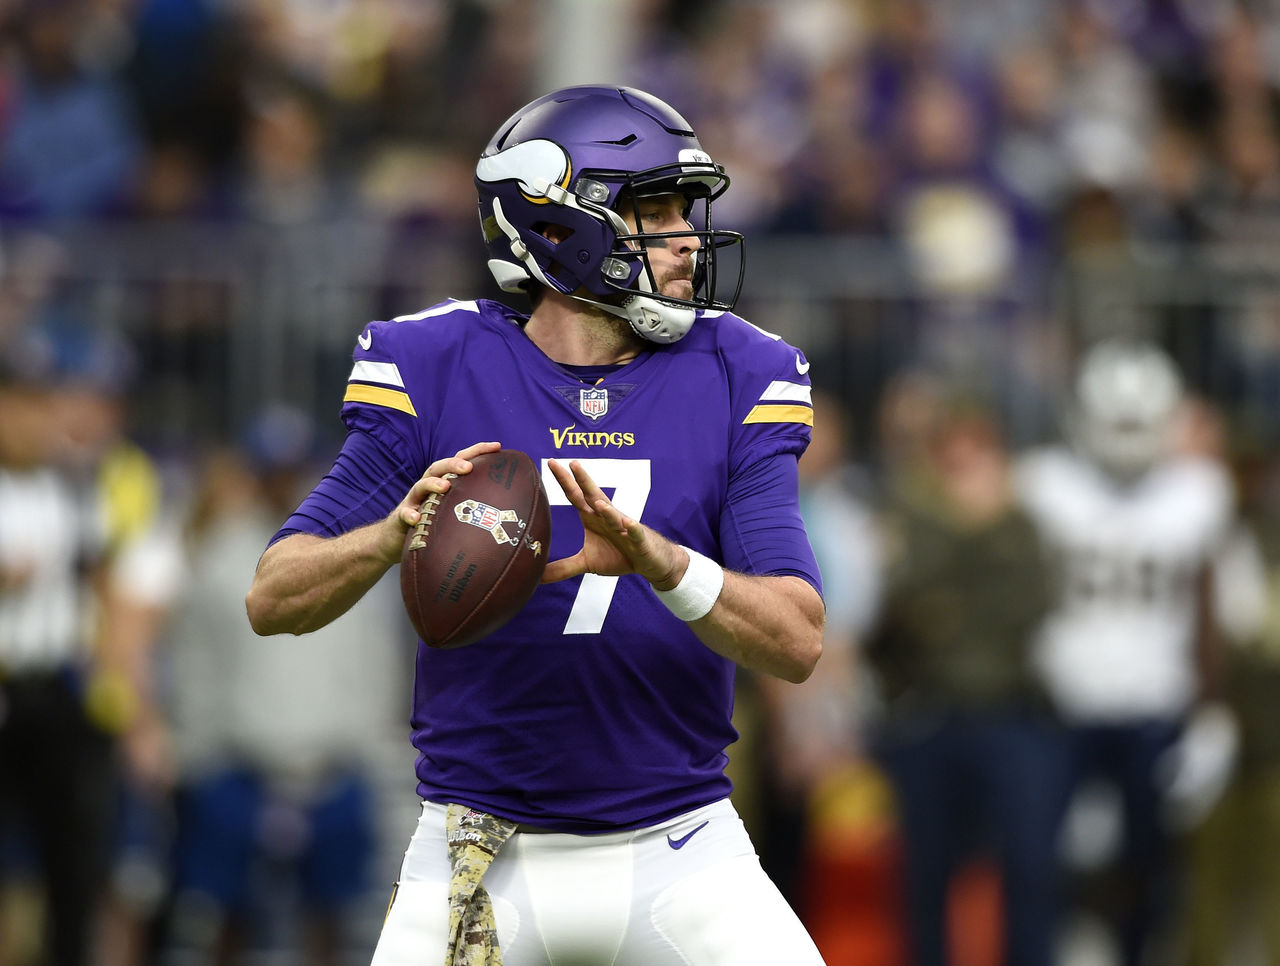 Vikings' Zimmer: It'd be 'hard to yank' Keenum in current form